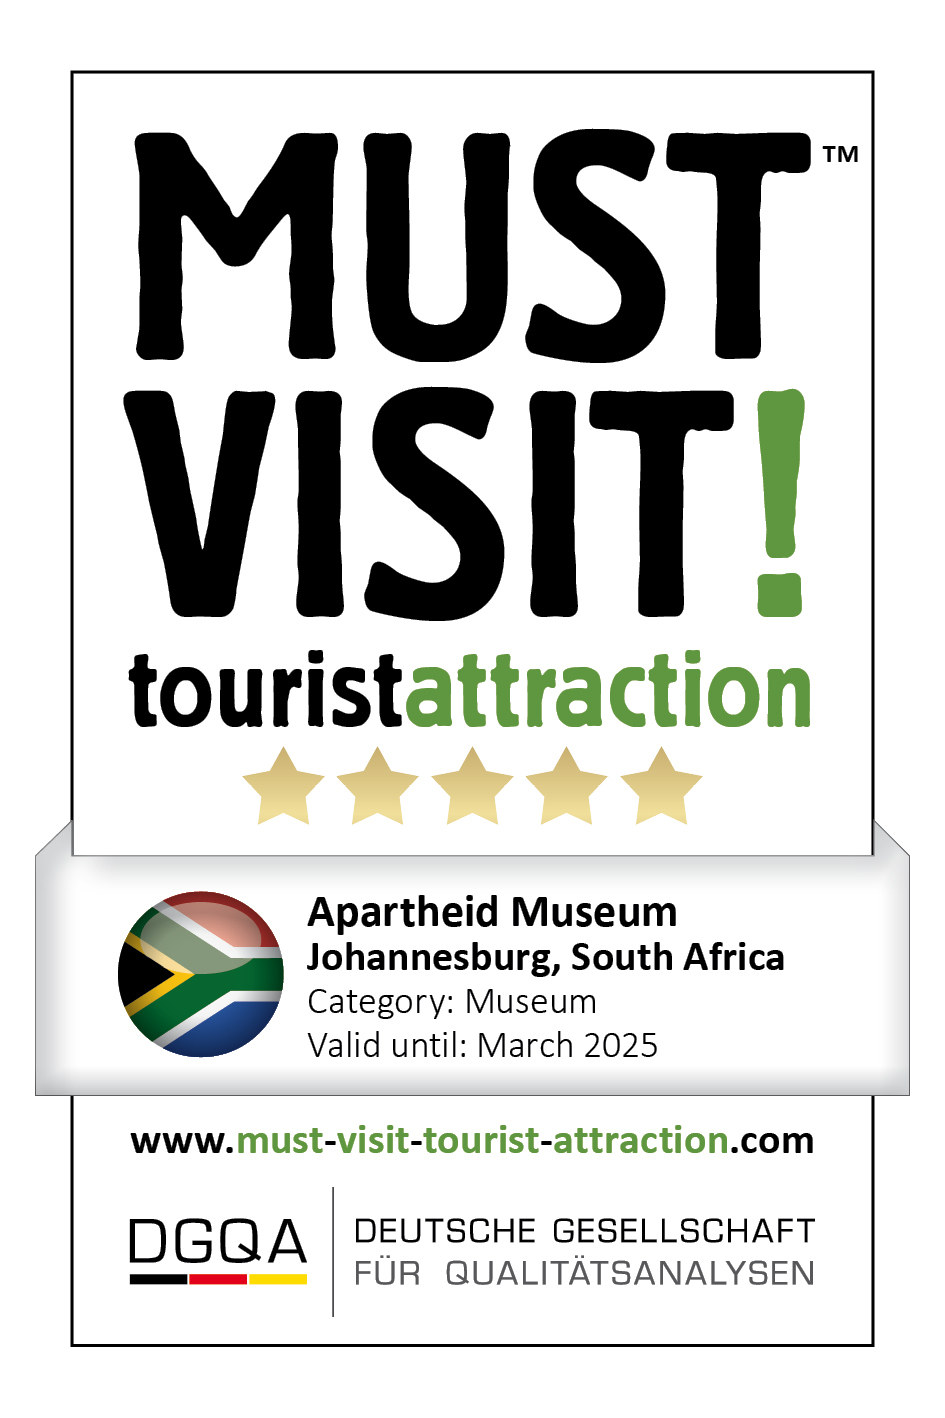 MUST VISIT! tourist attraction (dgqa) apartheid museum